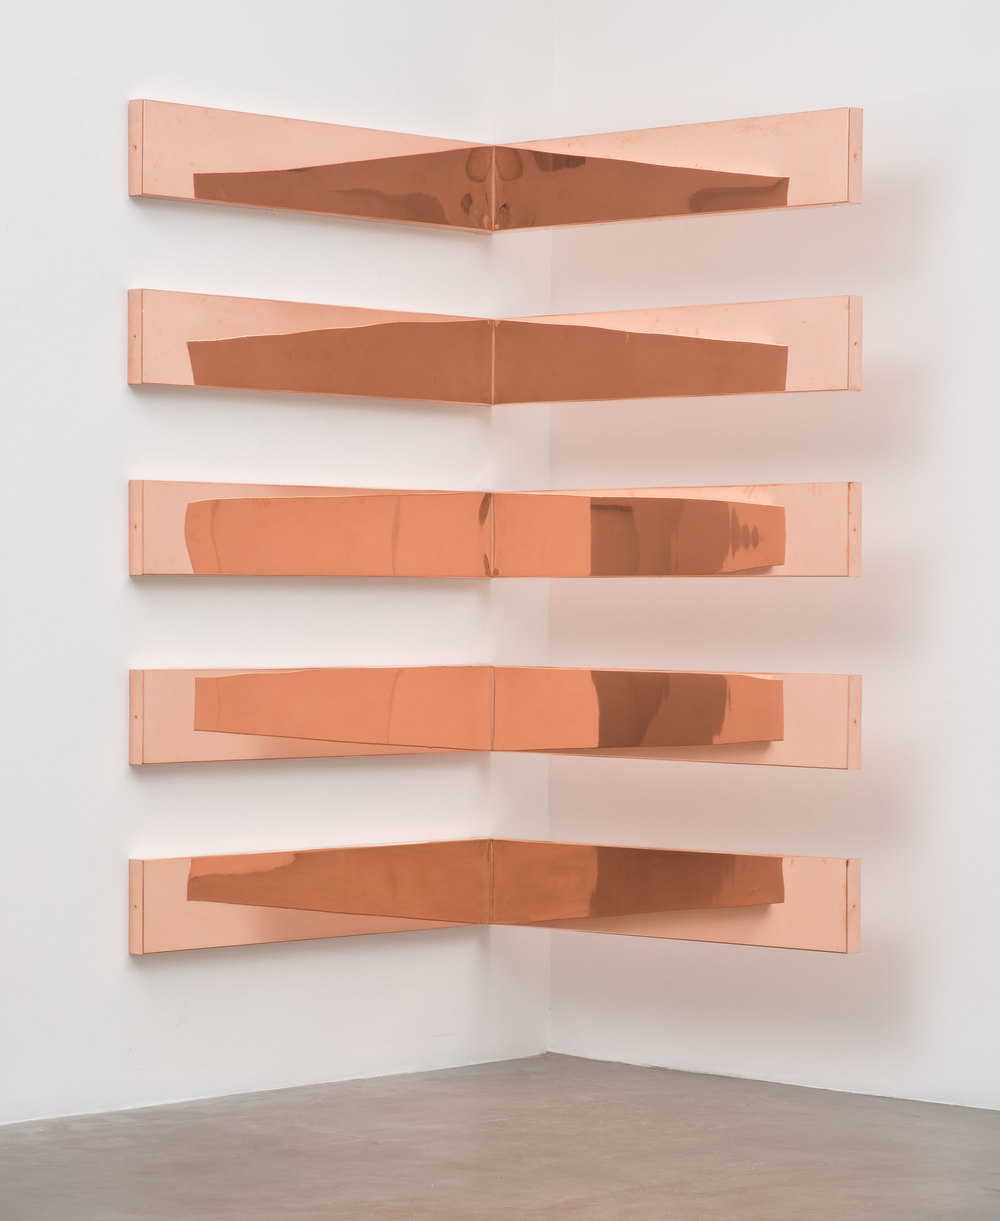 "Copper Surrogate (60"" x 120"" 48 ounce C11000 Copper Alloy, 90º Bend, 60"" Bisection/5 Sections: December 4/December 7, 2014, Miami Beach, Florida, February 10–12, 2015, Los Angeles, California)    2014–   Polished copper  11 x 60 x 60 inches each, 5 parts   Walid AlBeshti, 2015"